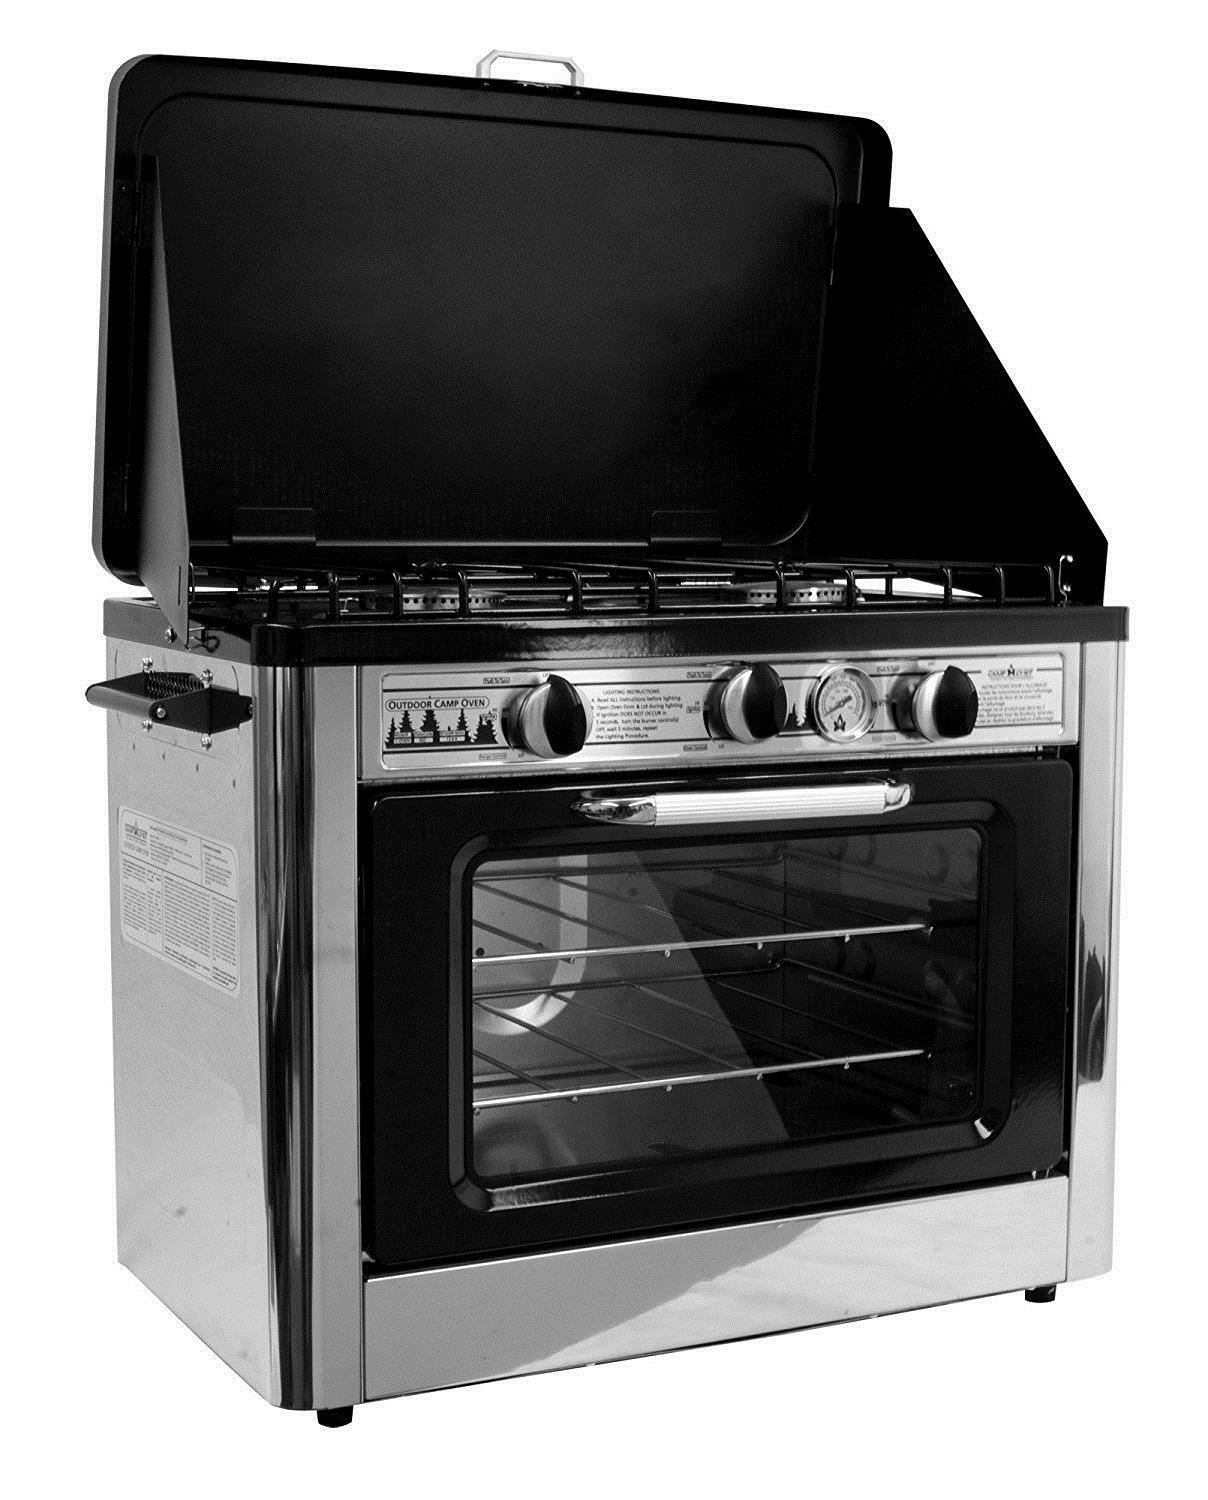 Camp Chef Camping Outdoor Oven Burner with 2 Burner Oven Camping Stove 4e366b